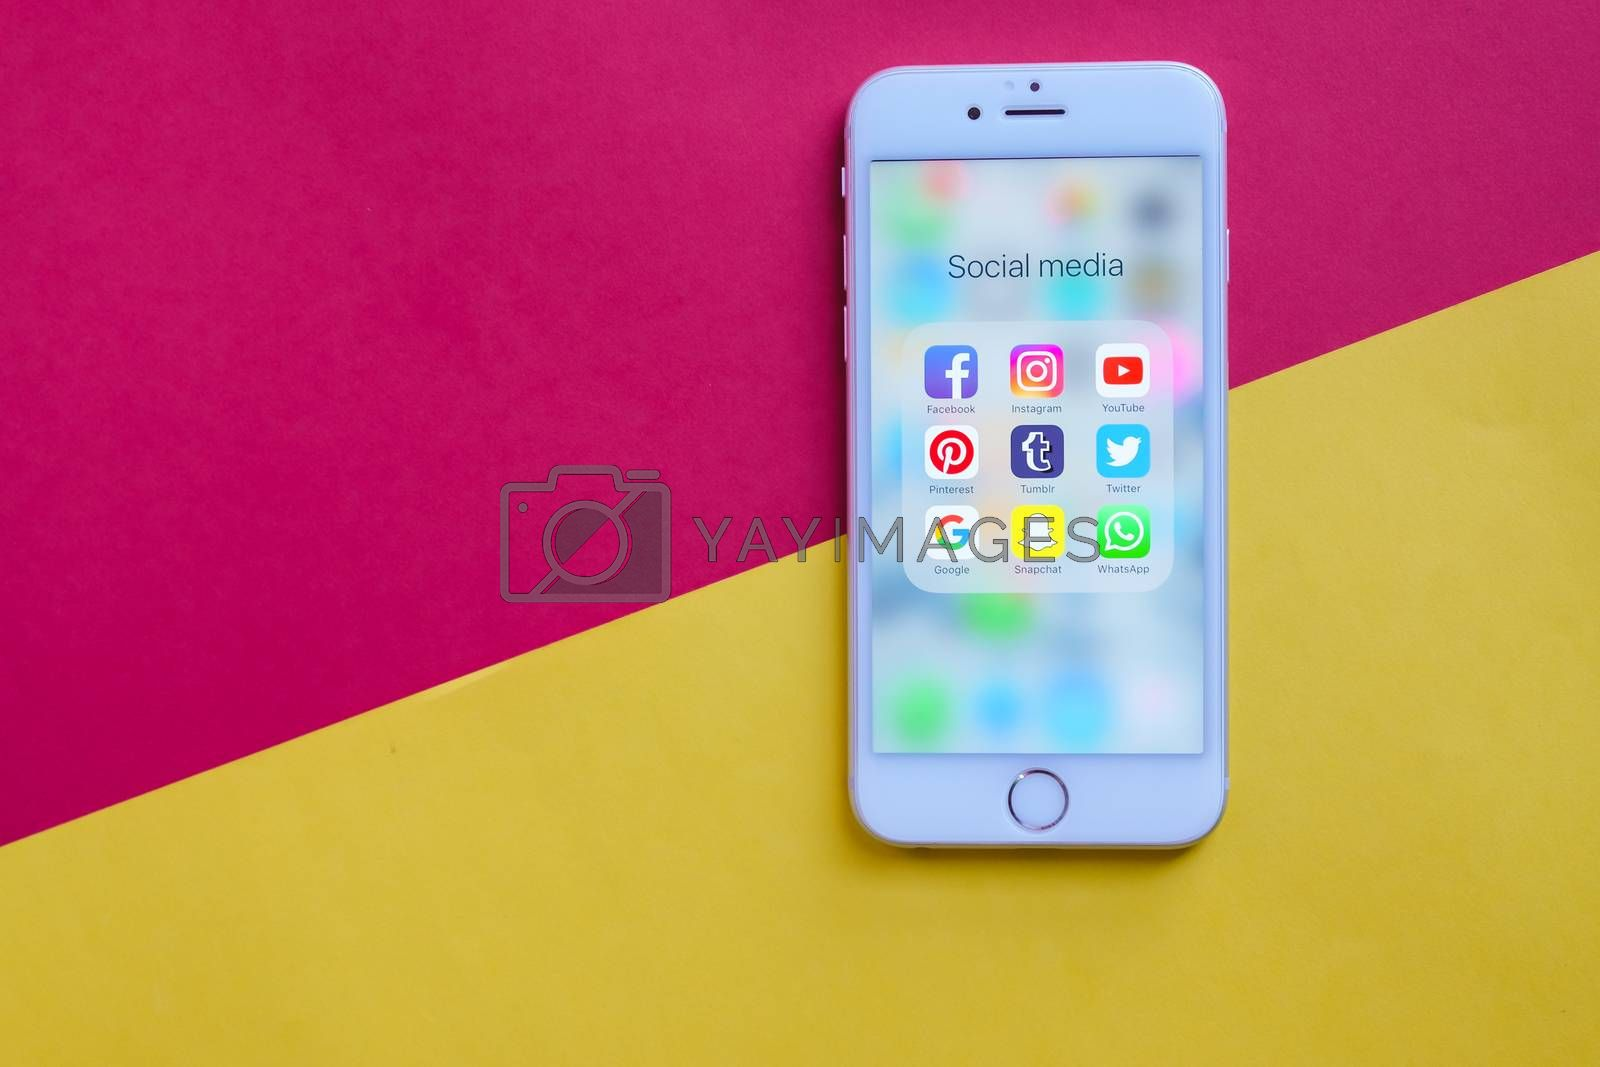 BANGKOK, THAILAND - NOVEMBER 28, 2016: Apple iPhone 6s screen showing group of popular social networks icons on yellow and red background, Social media are most popular tool for communication.